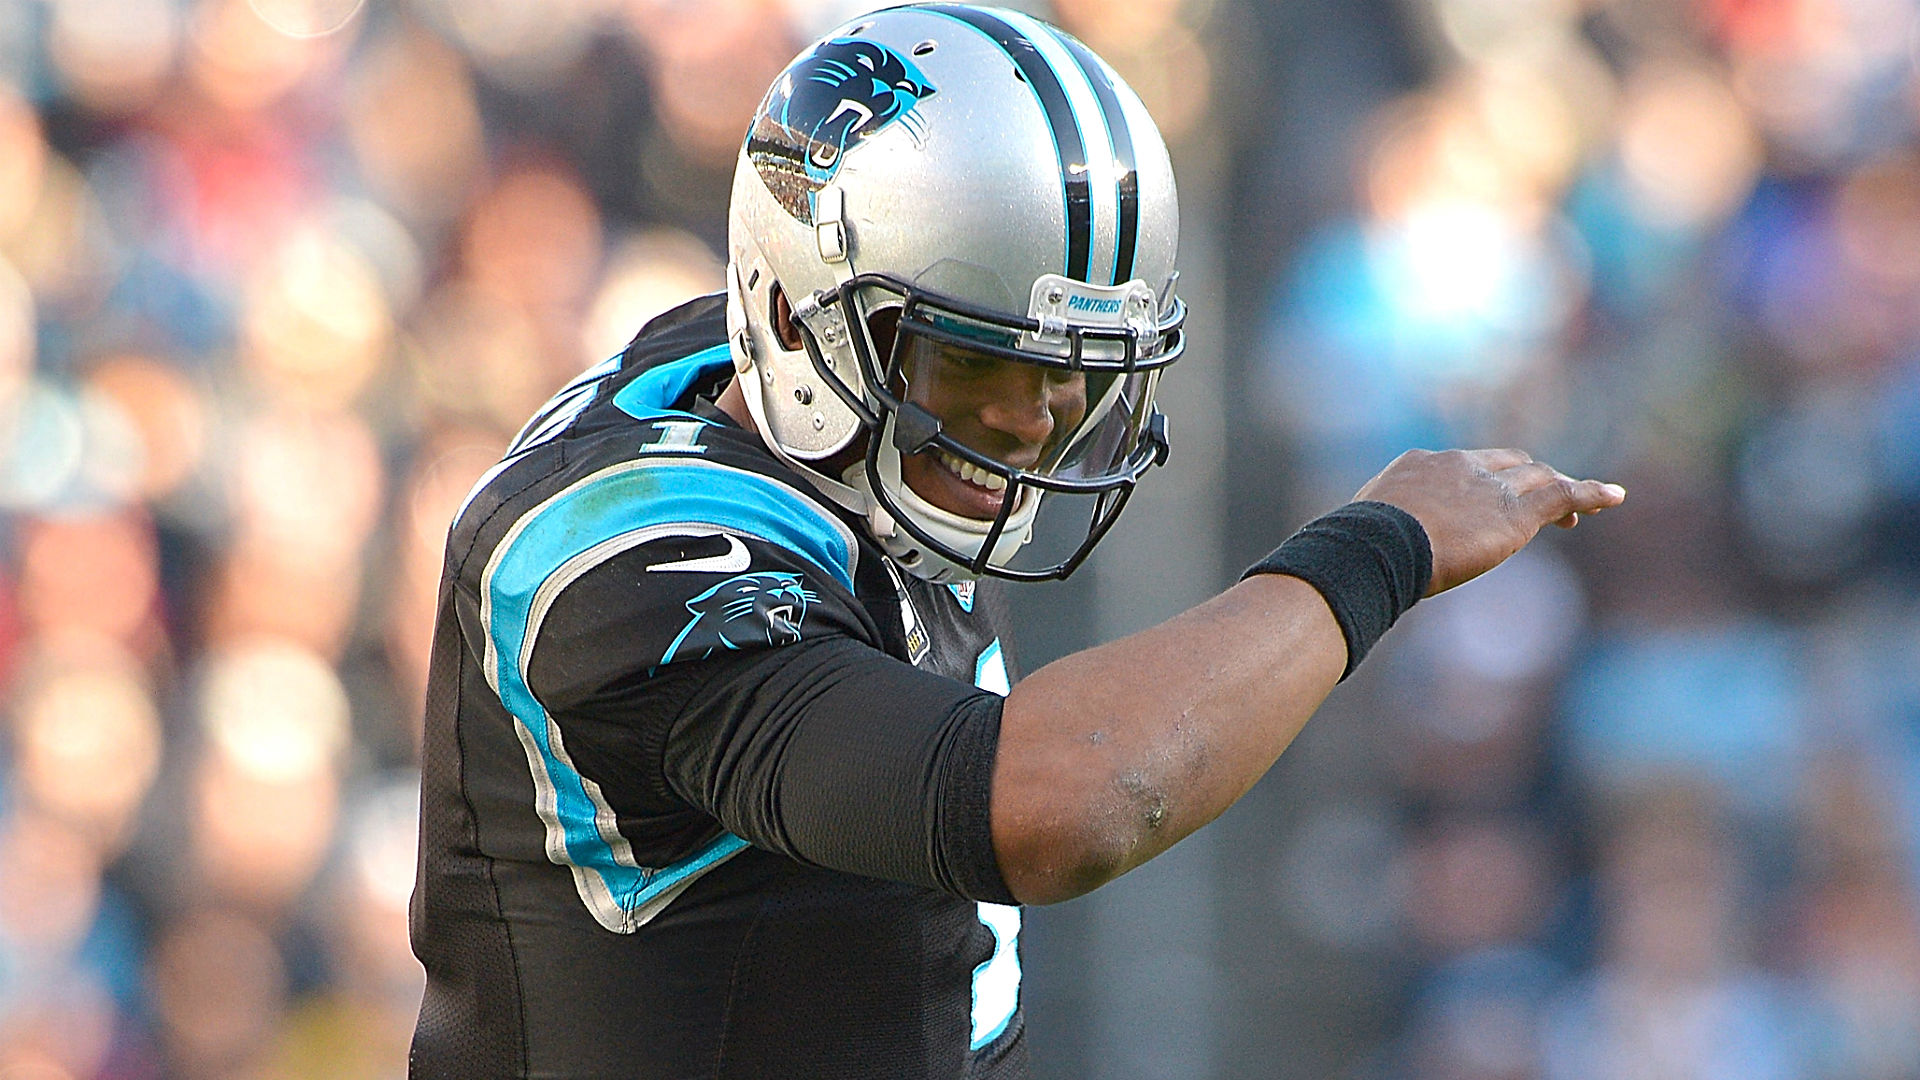 Cam Newton is among Top 10 Good looking NFL Players